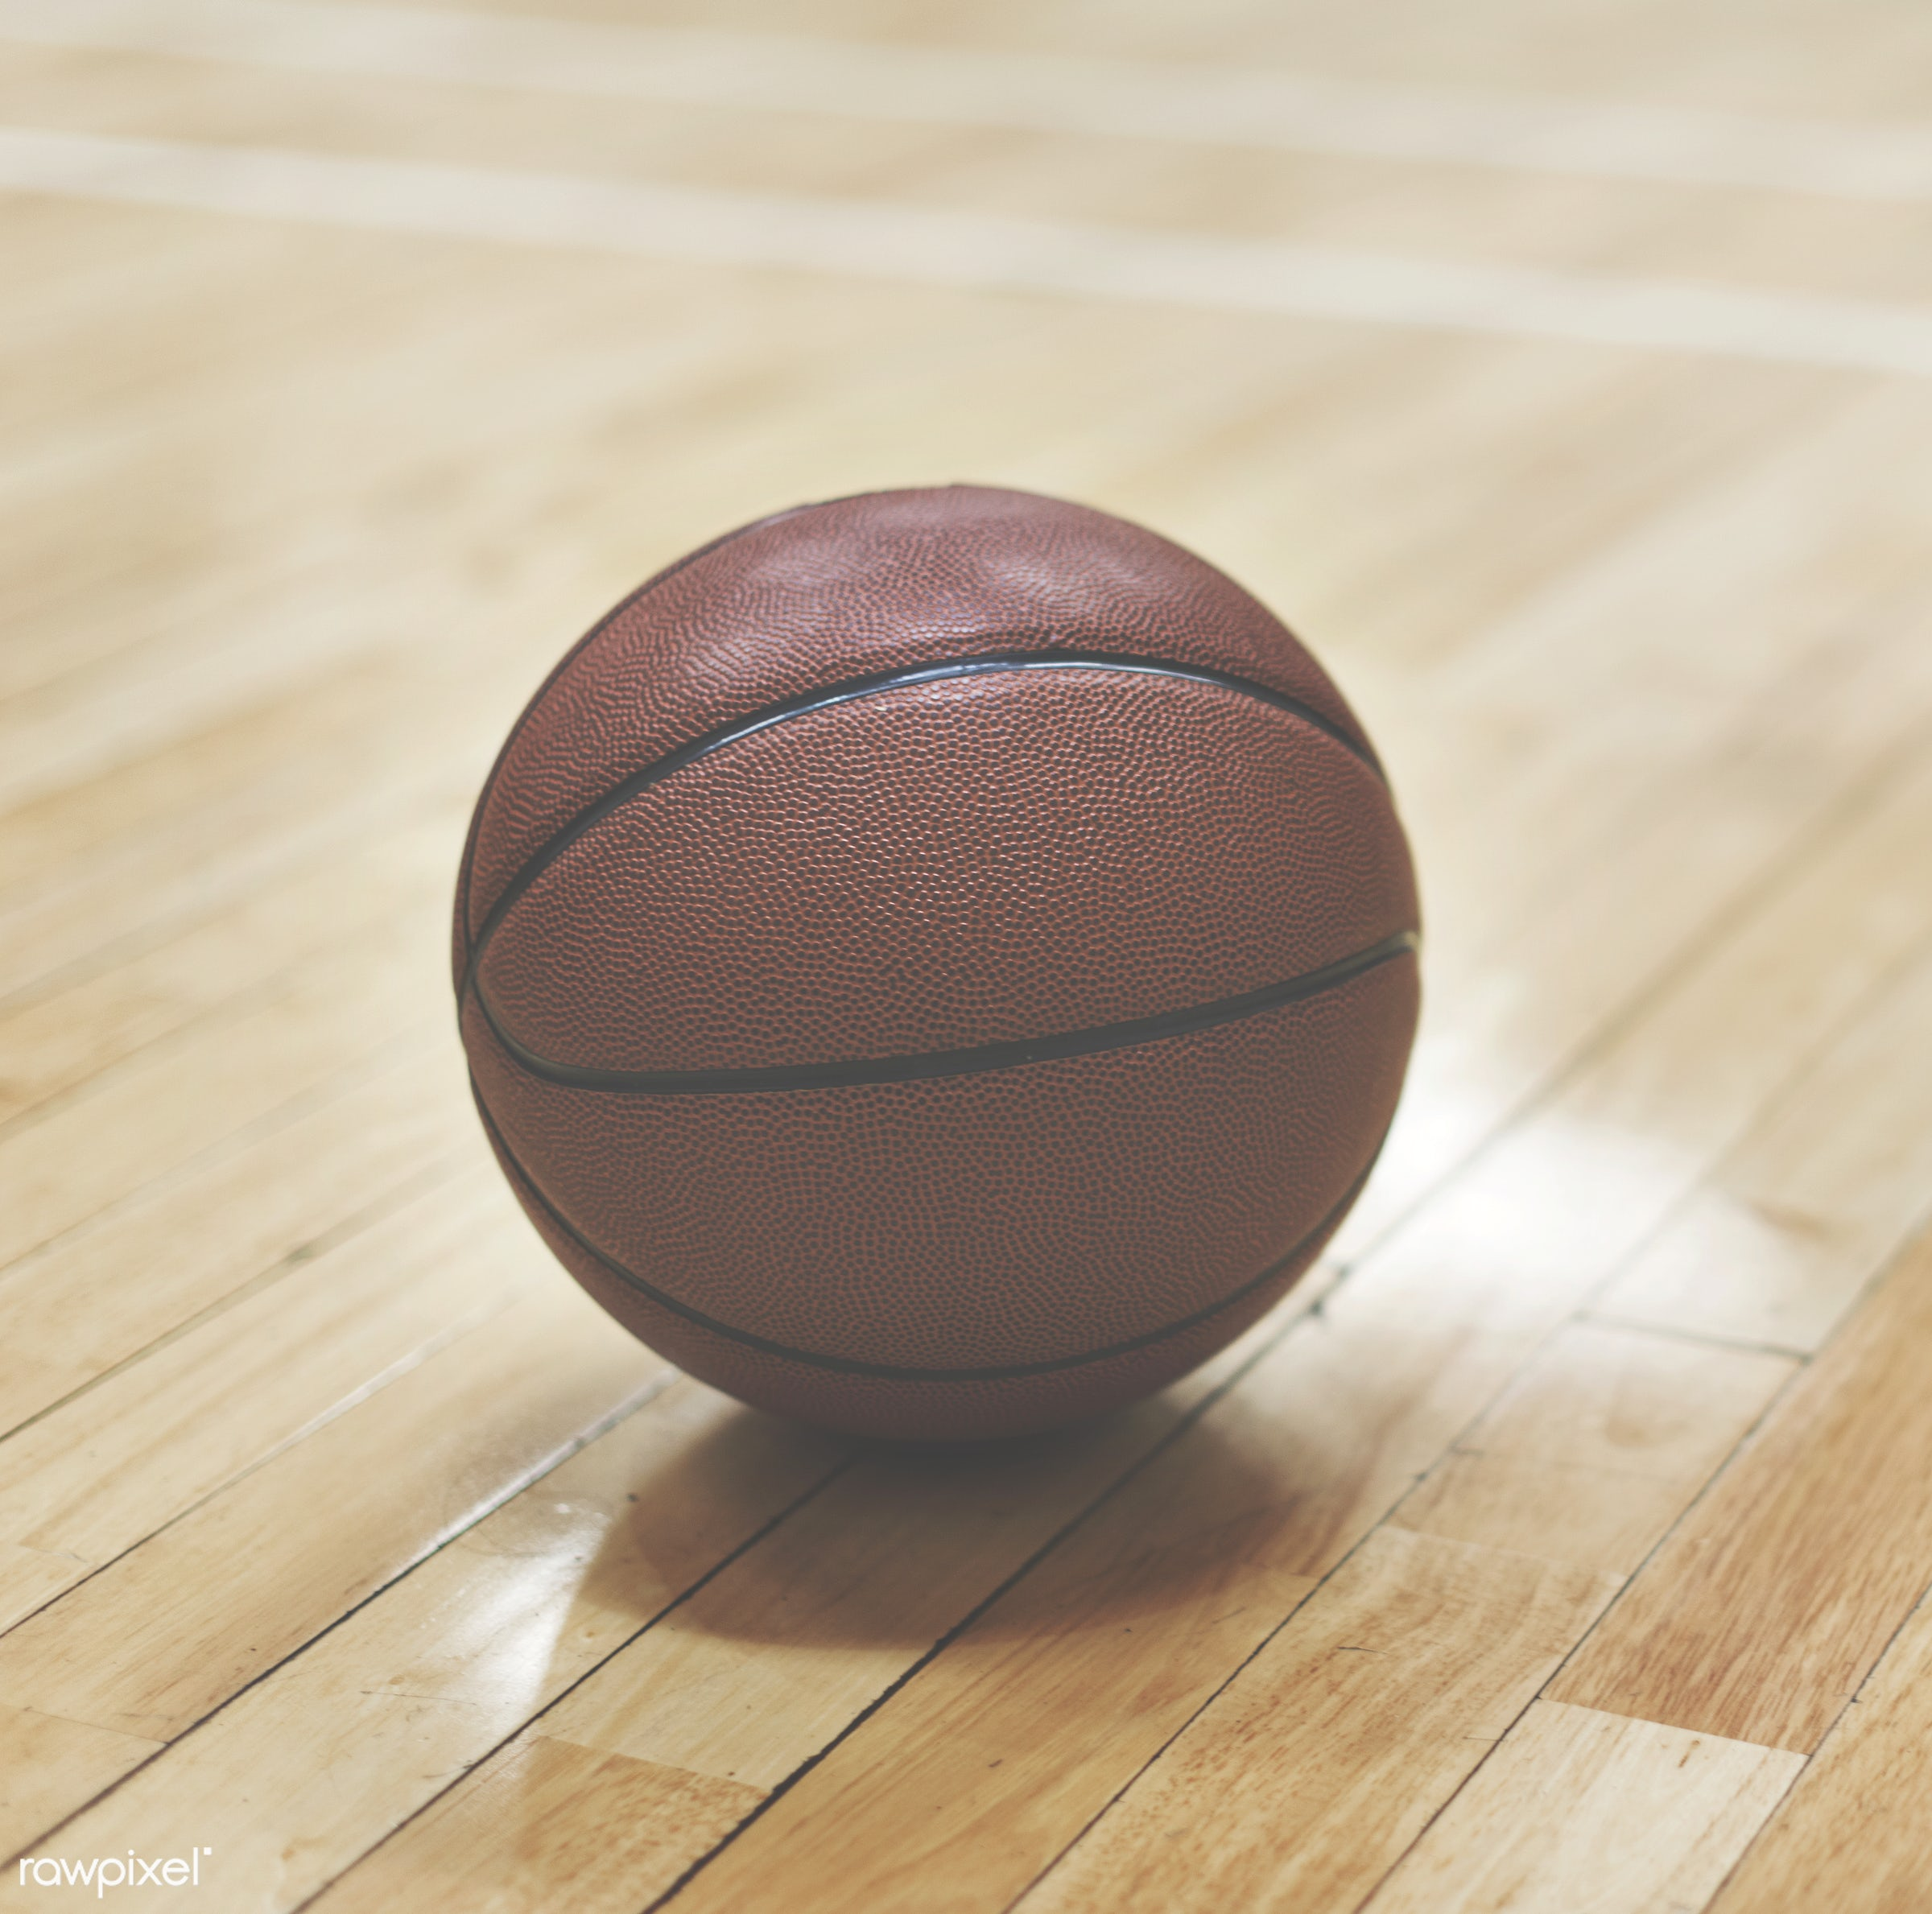 basketball, activity, ball, closeup, court, exercise, floor, game, object, play, practice, sport, strength